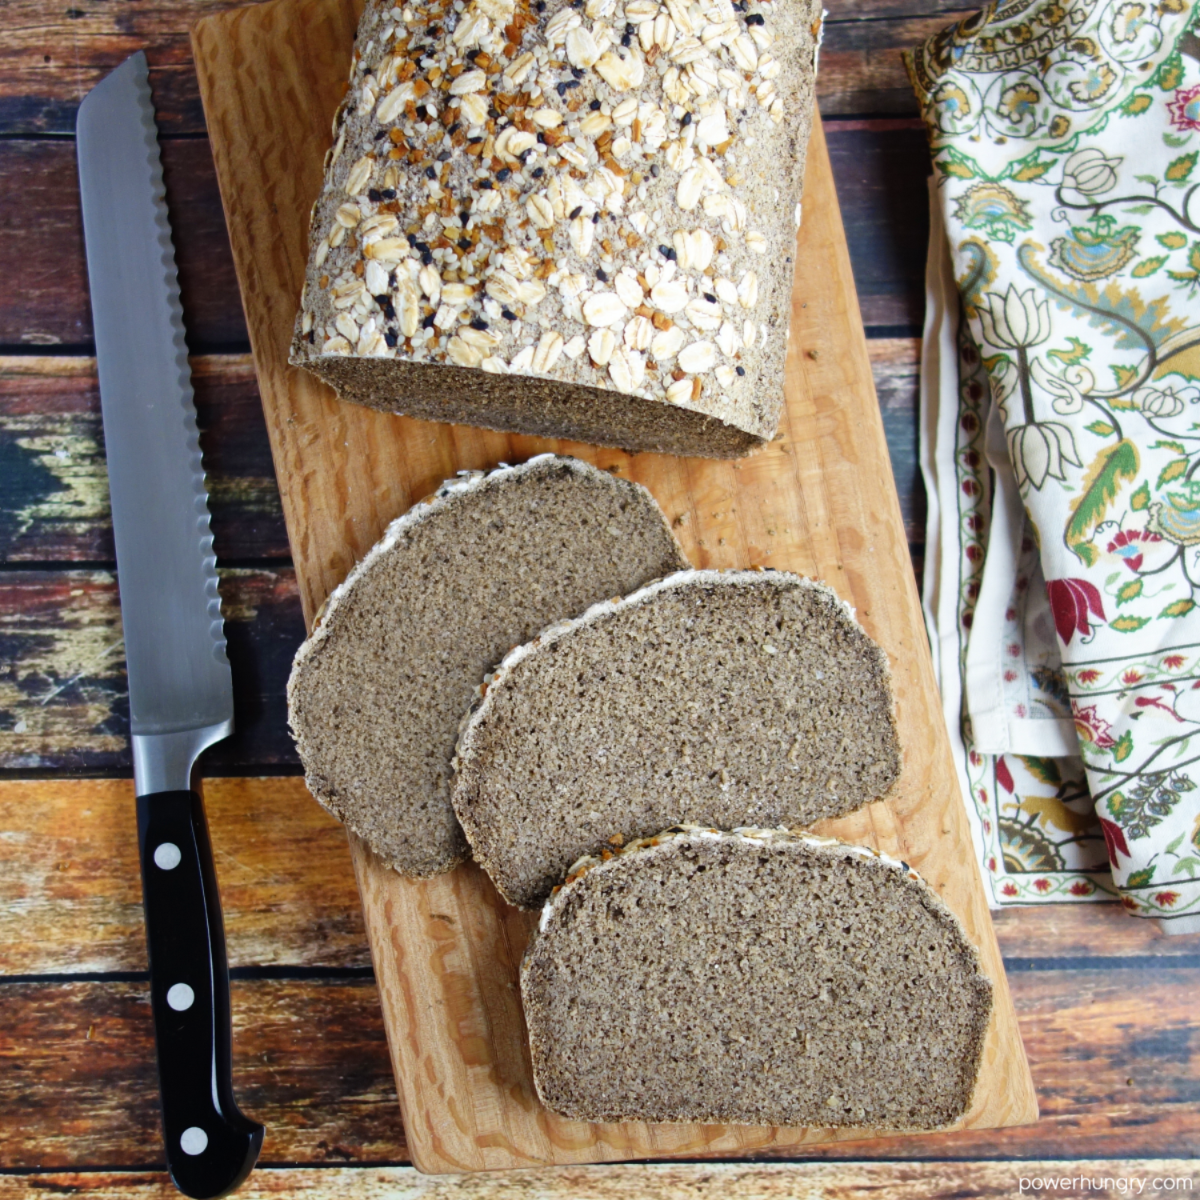 a sliced loaf of gluten-free bluckwheat bread on an artisan wood cutting board.